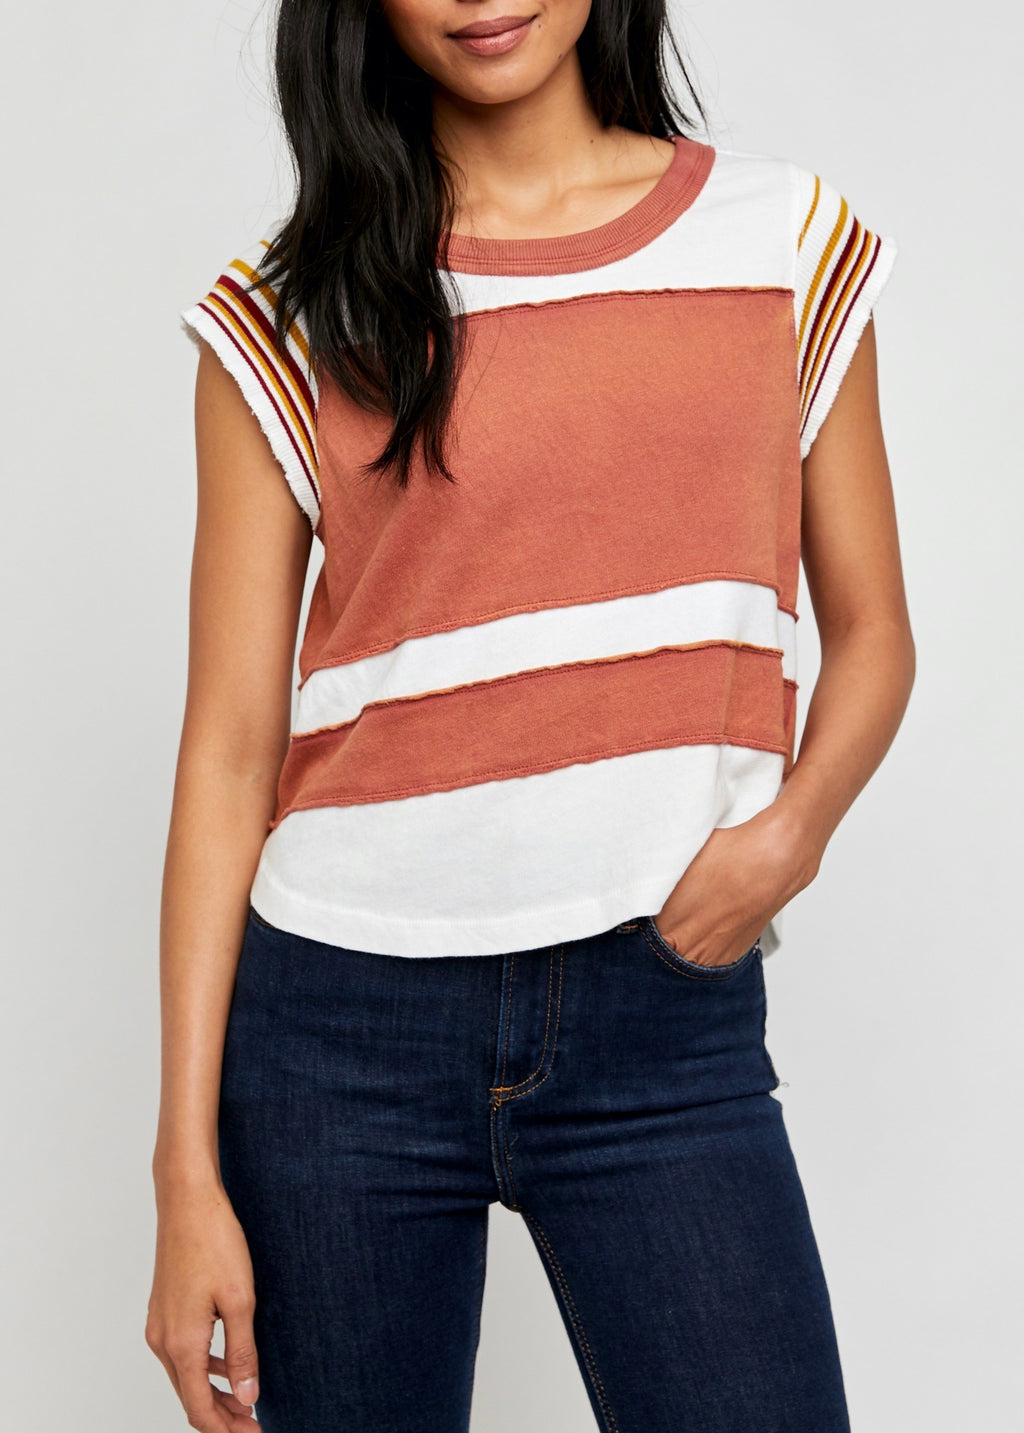 Hint of Stripe Tee